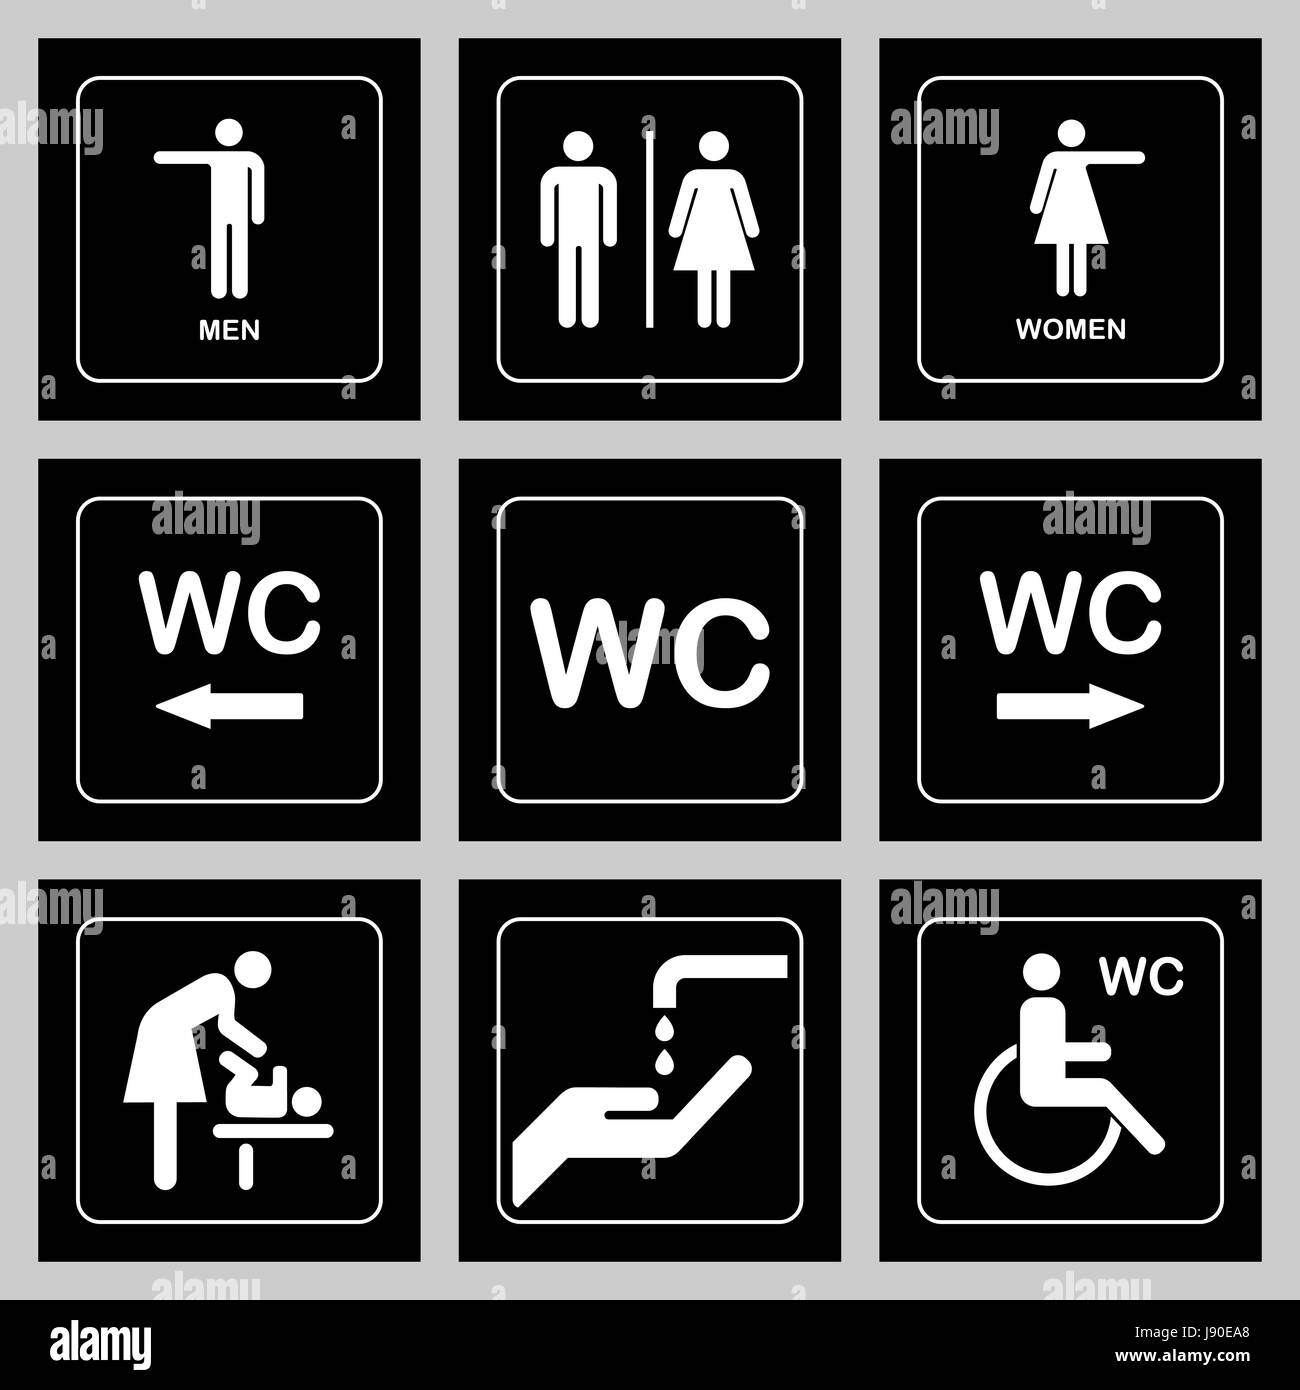 WC / Toilet door plate icons set. Men and women WC sign for restroom.  sc 1 st  Alamy & WC / Toilet door plate icons set. Men and women WC sign for restroom ...